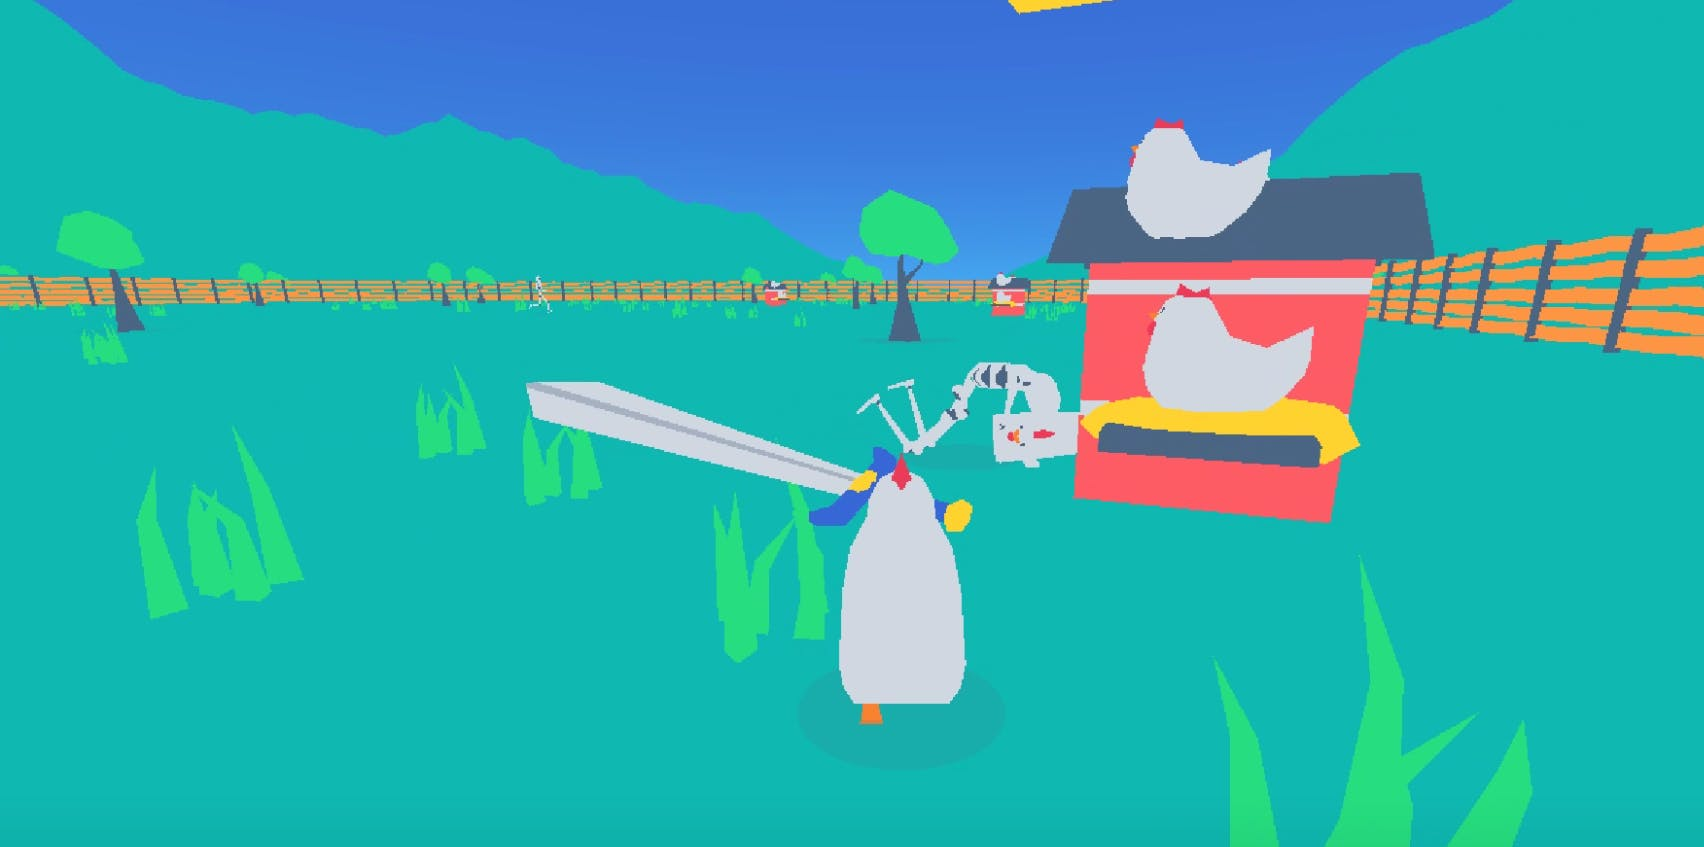 Chick'n Sword - Made with Godot